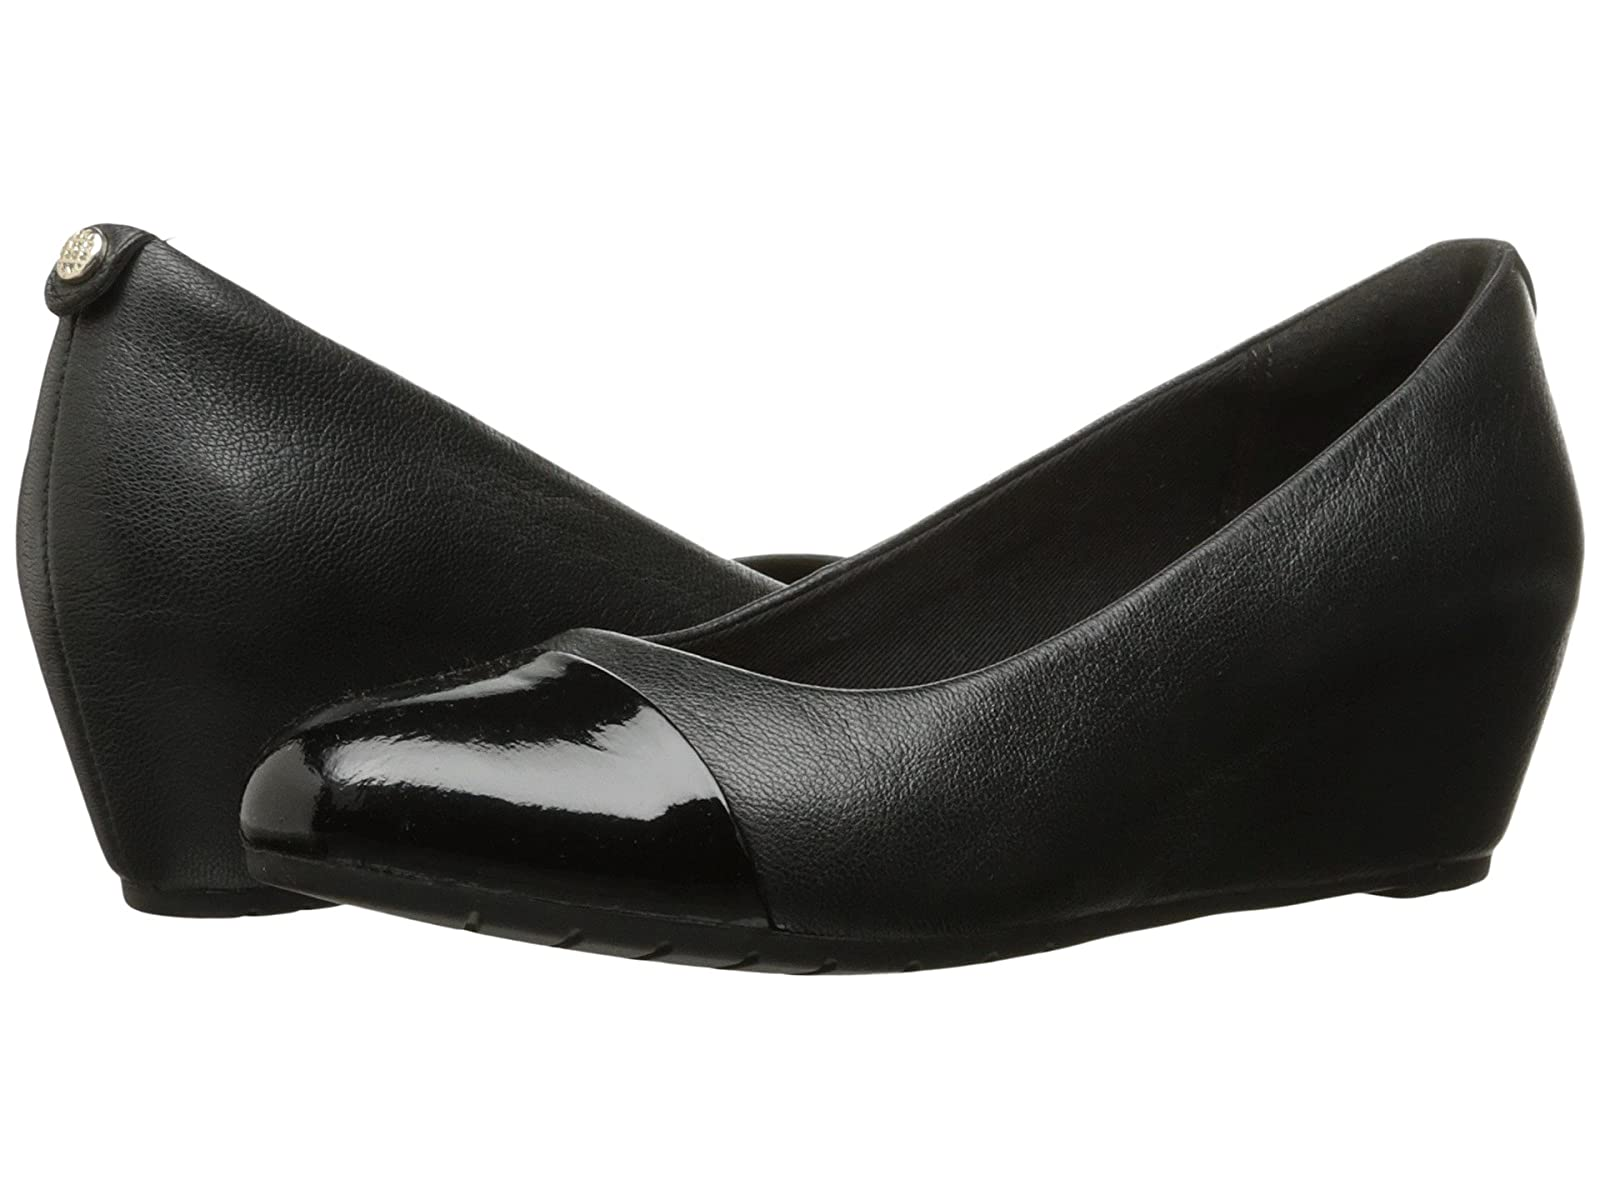 Clarks Vendra DuneCheap and distinctive eye-catching shoes